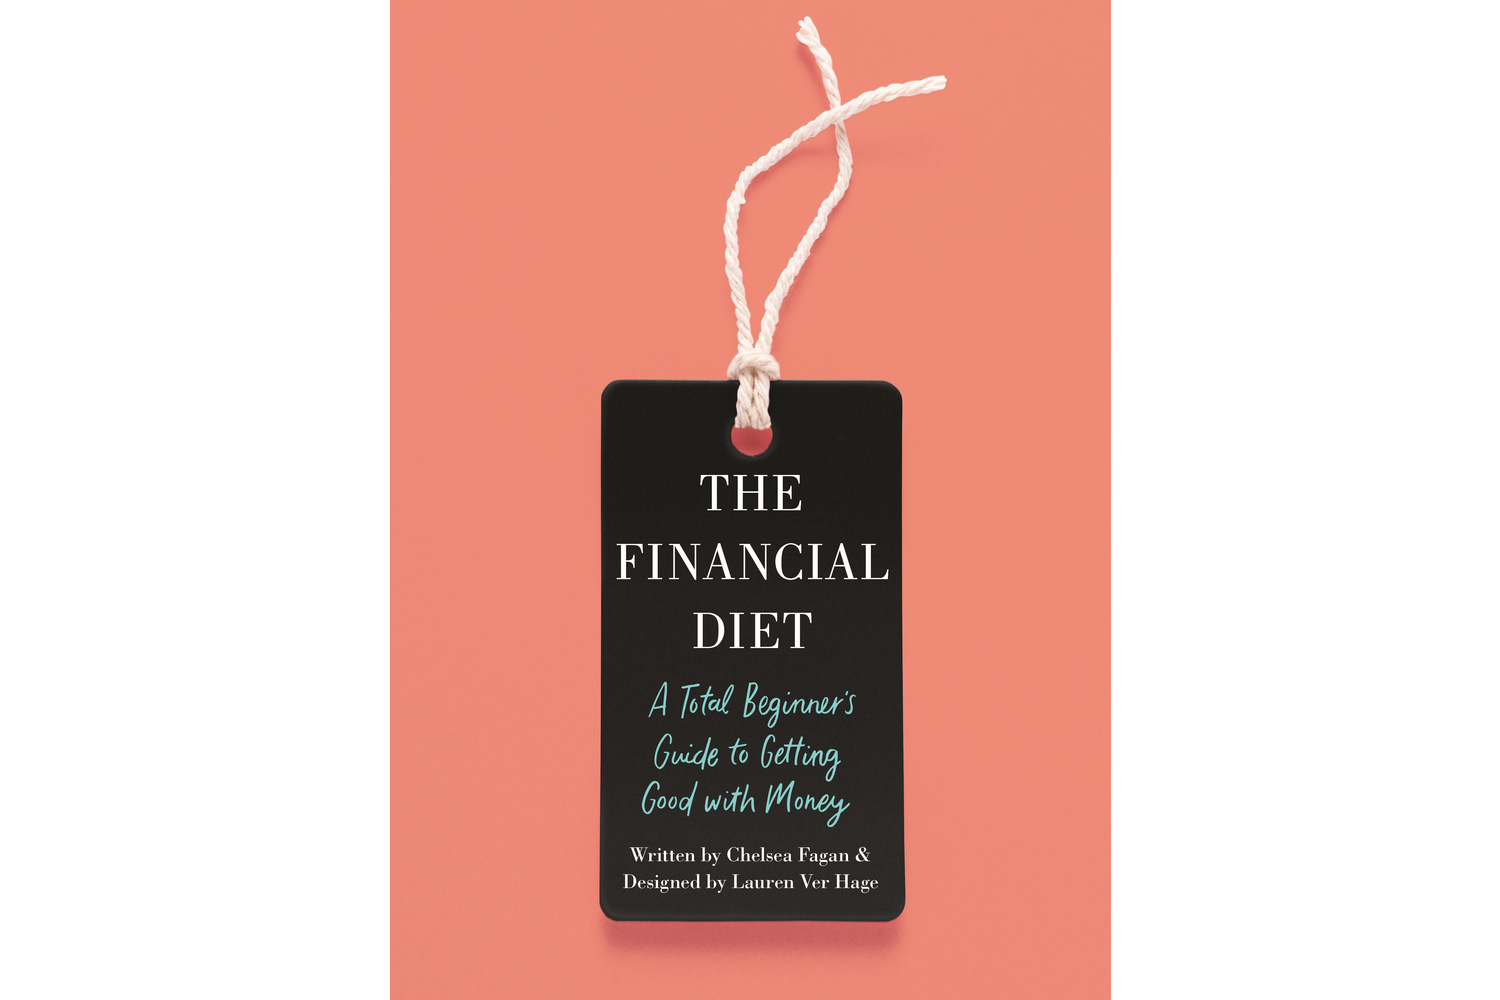 The Financial Diet, by Chelsea Fagan and Lauren Ver Hage